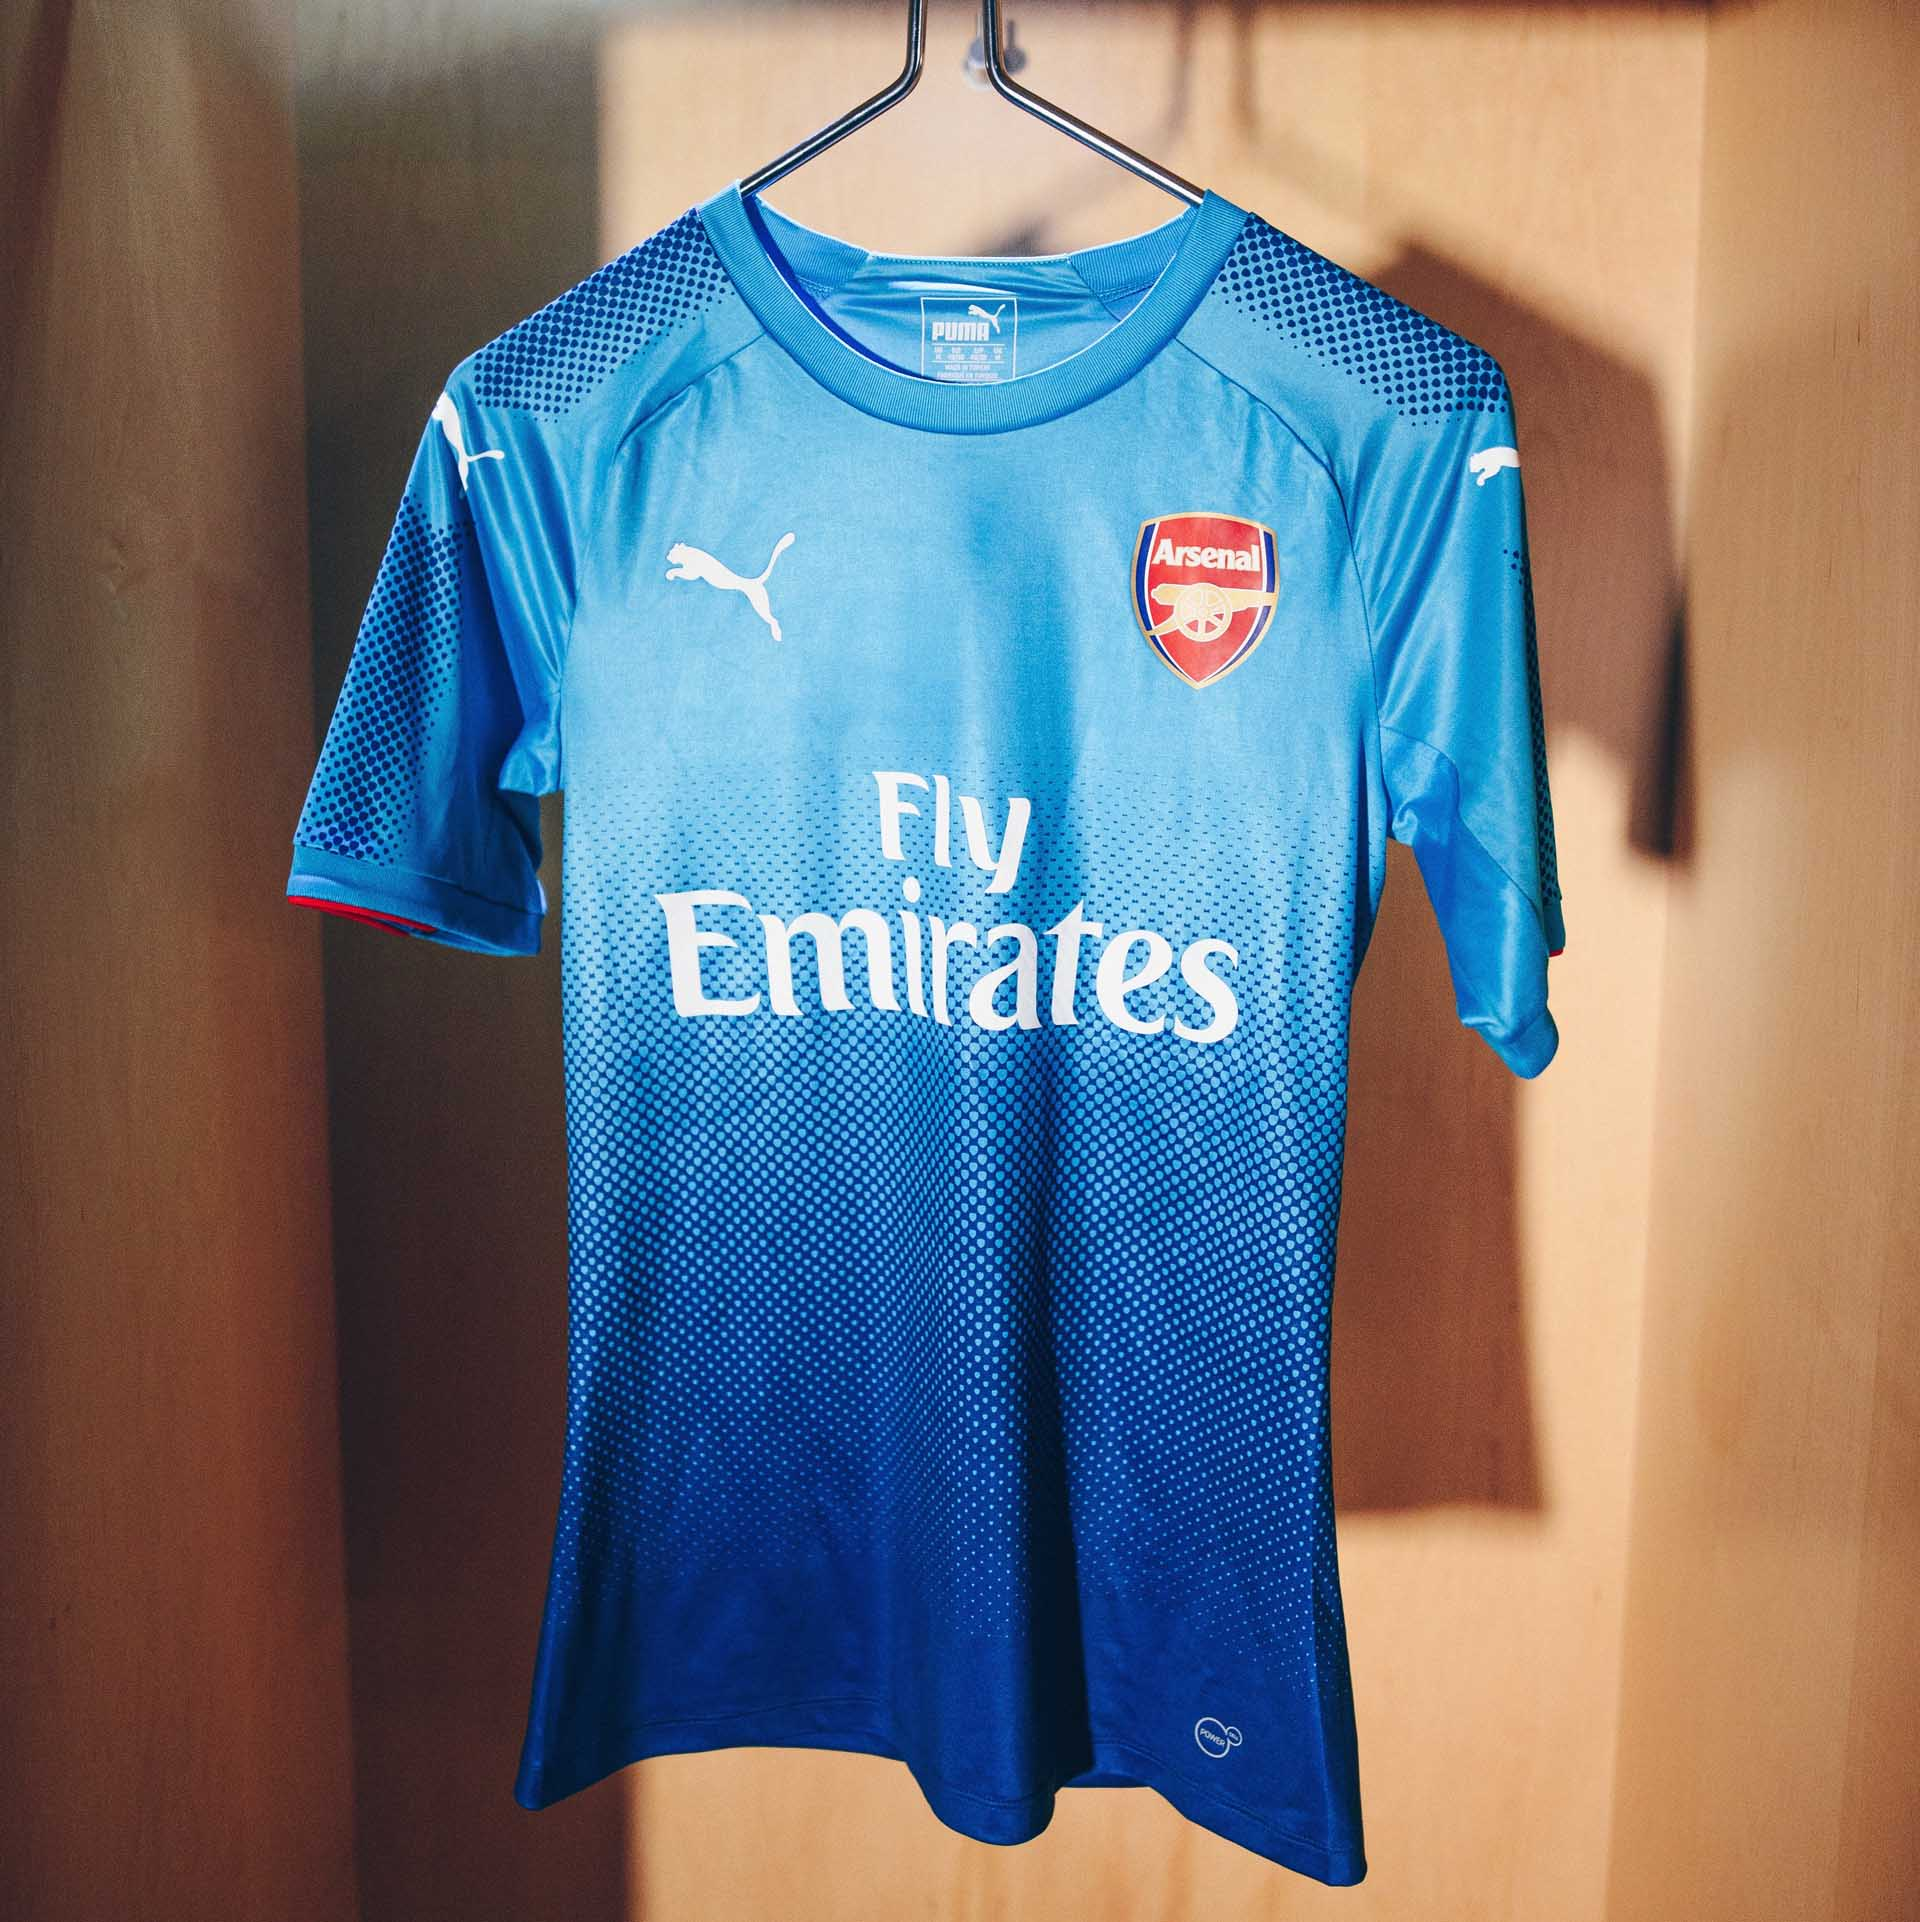 timeless design 72a83 34bf2 Arsenal 2017/18 PUMA Away Shirt - SoccerBible